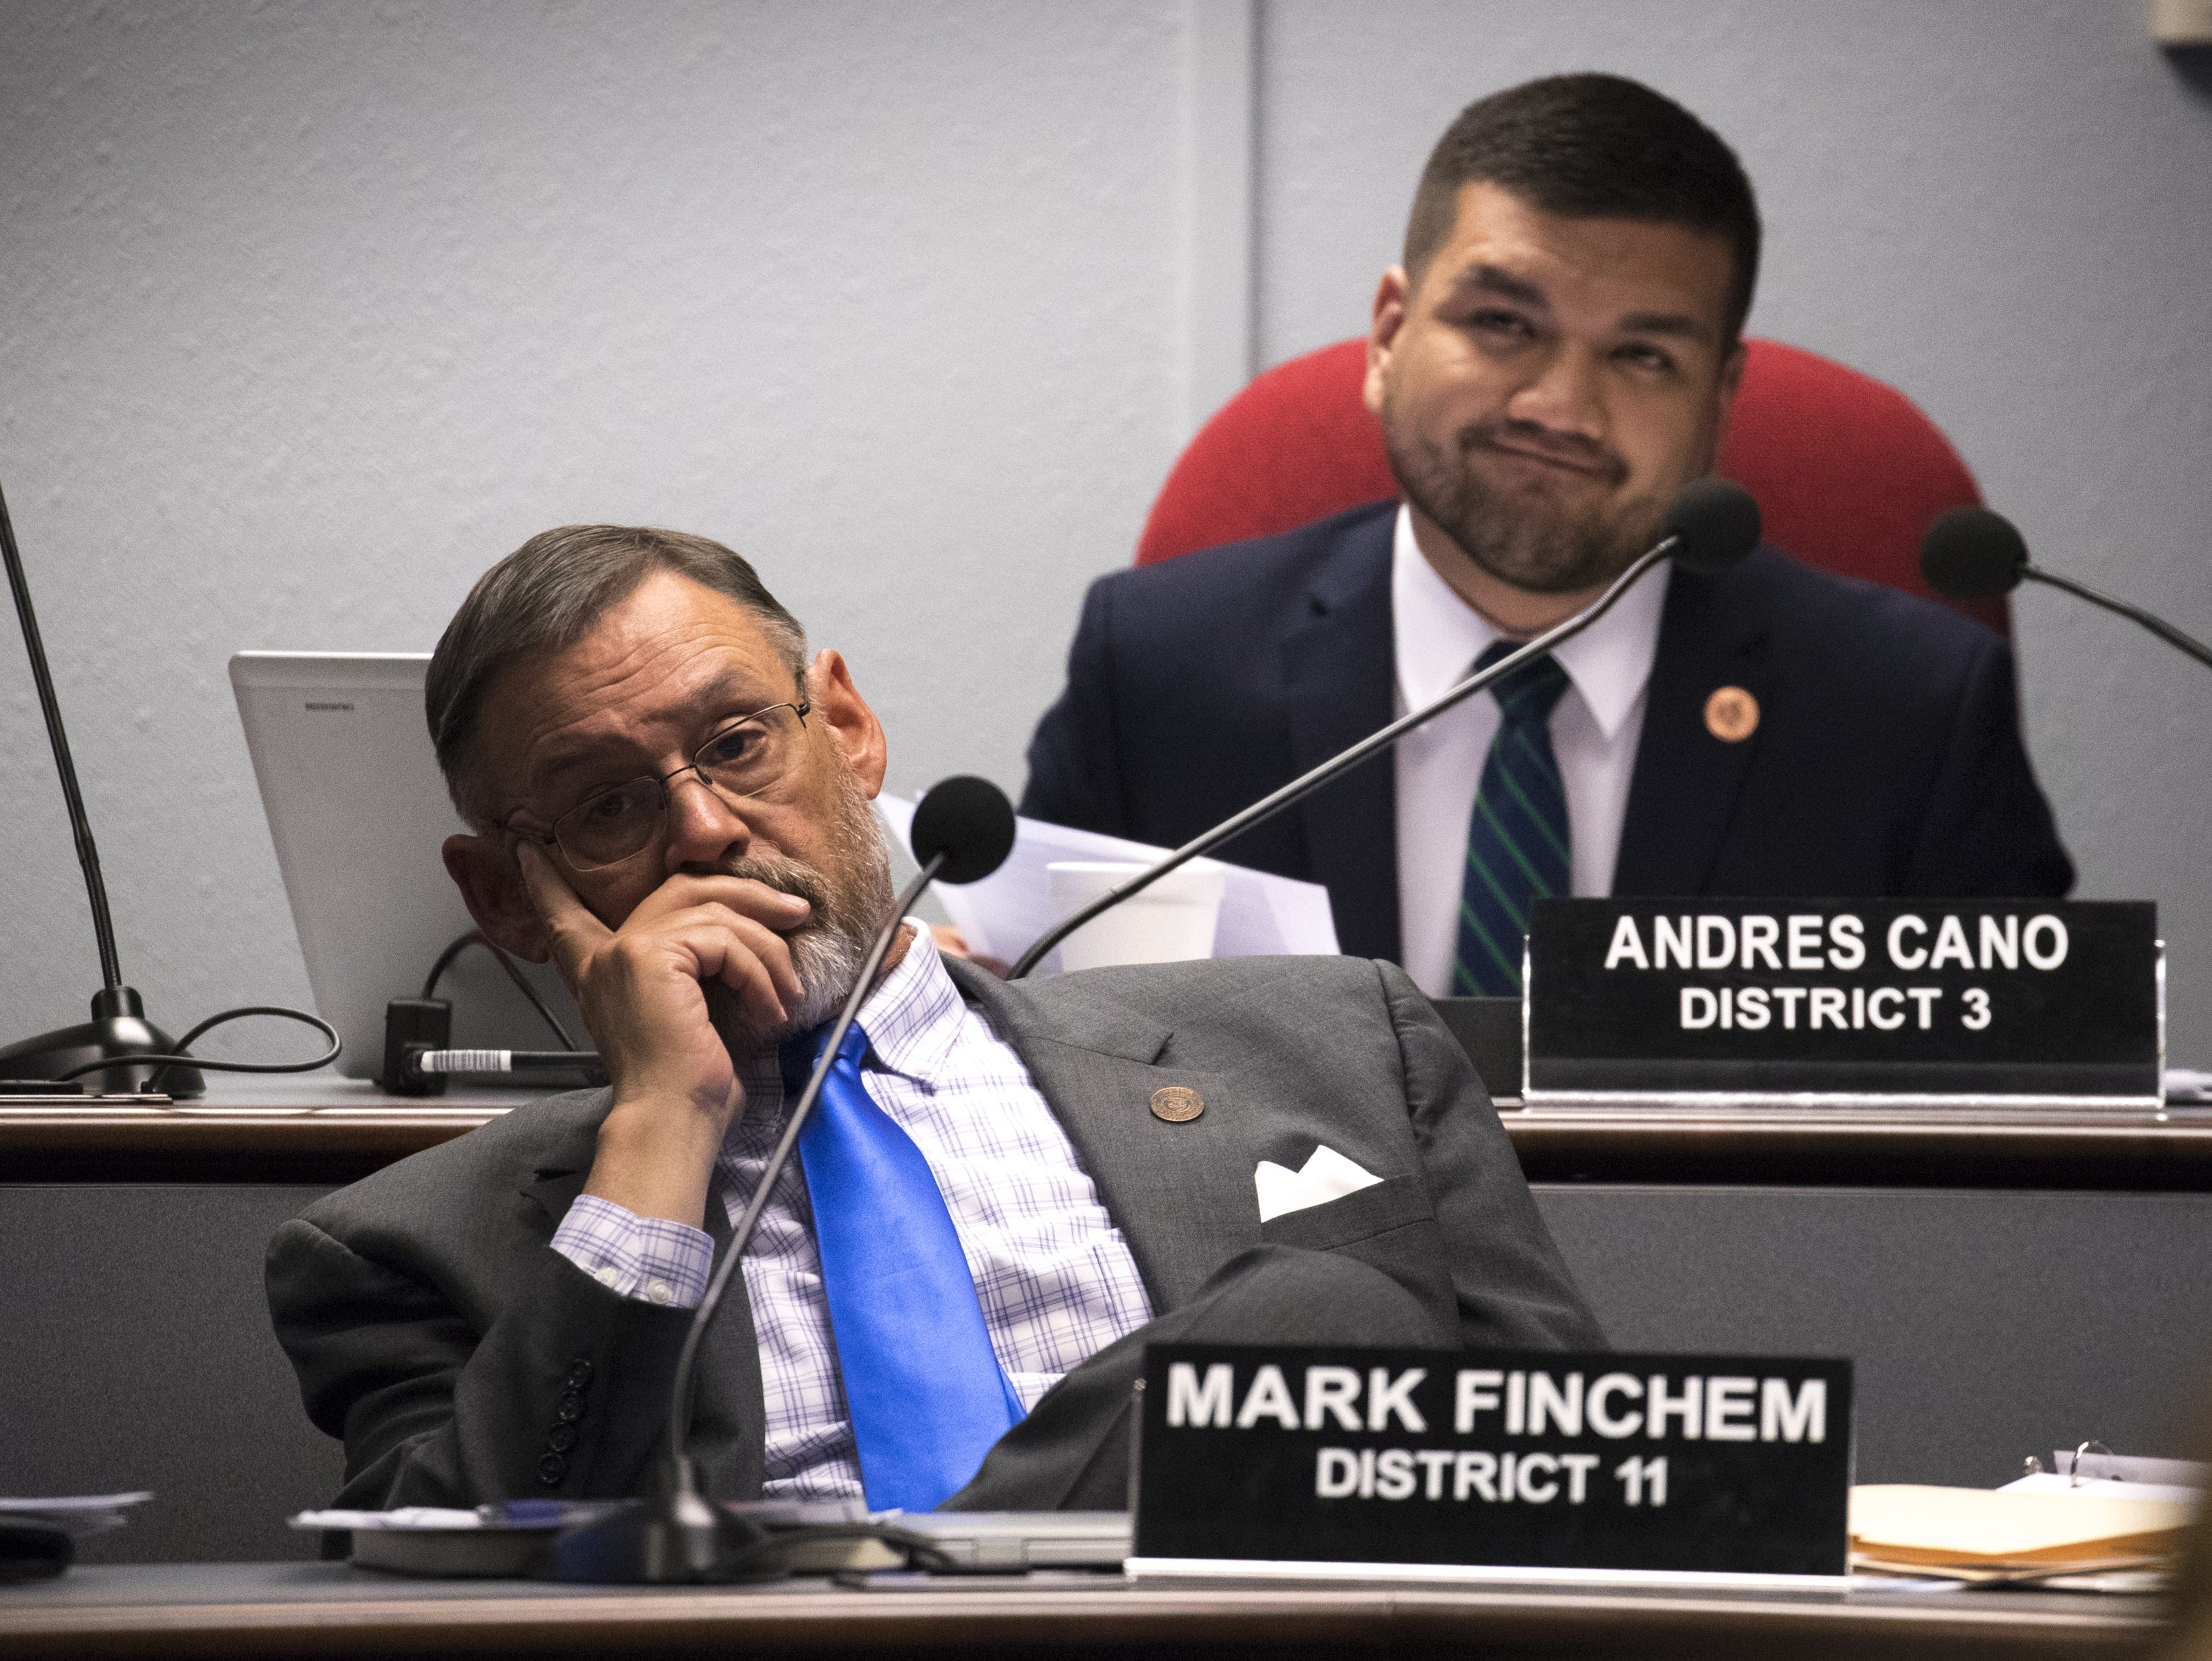 Rep. Mark Finchem (front) and Rep. Andres Cano listen during a hearing on HB 2540, Jan. 29, 2019, at the Arizona House of Representatives' Committee on Natural Resources, Energy and Water at the Arizona Capitol.